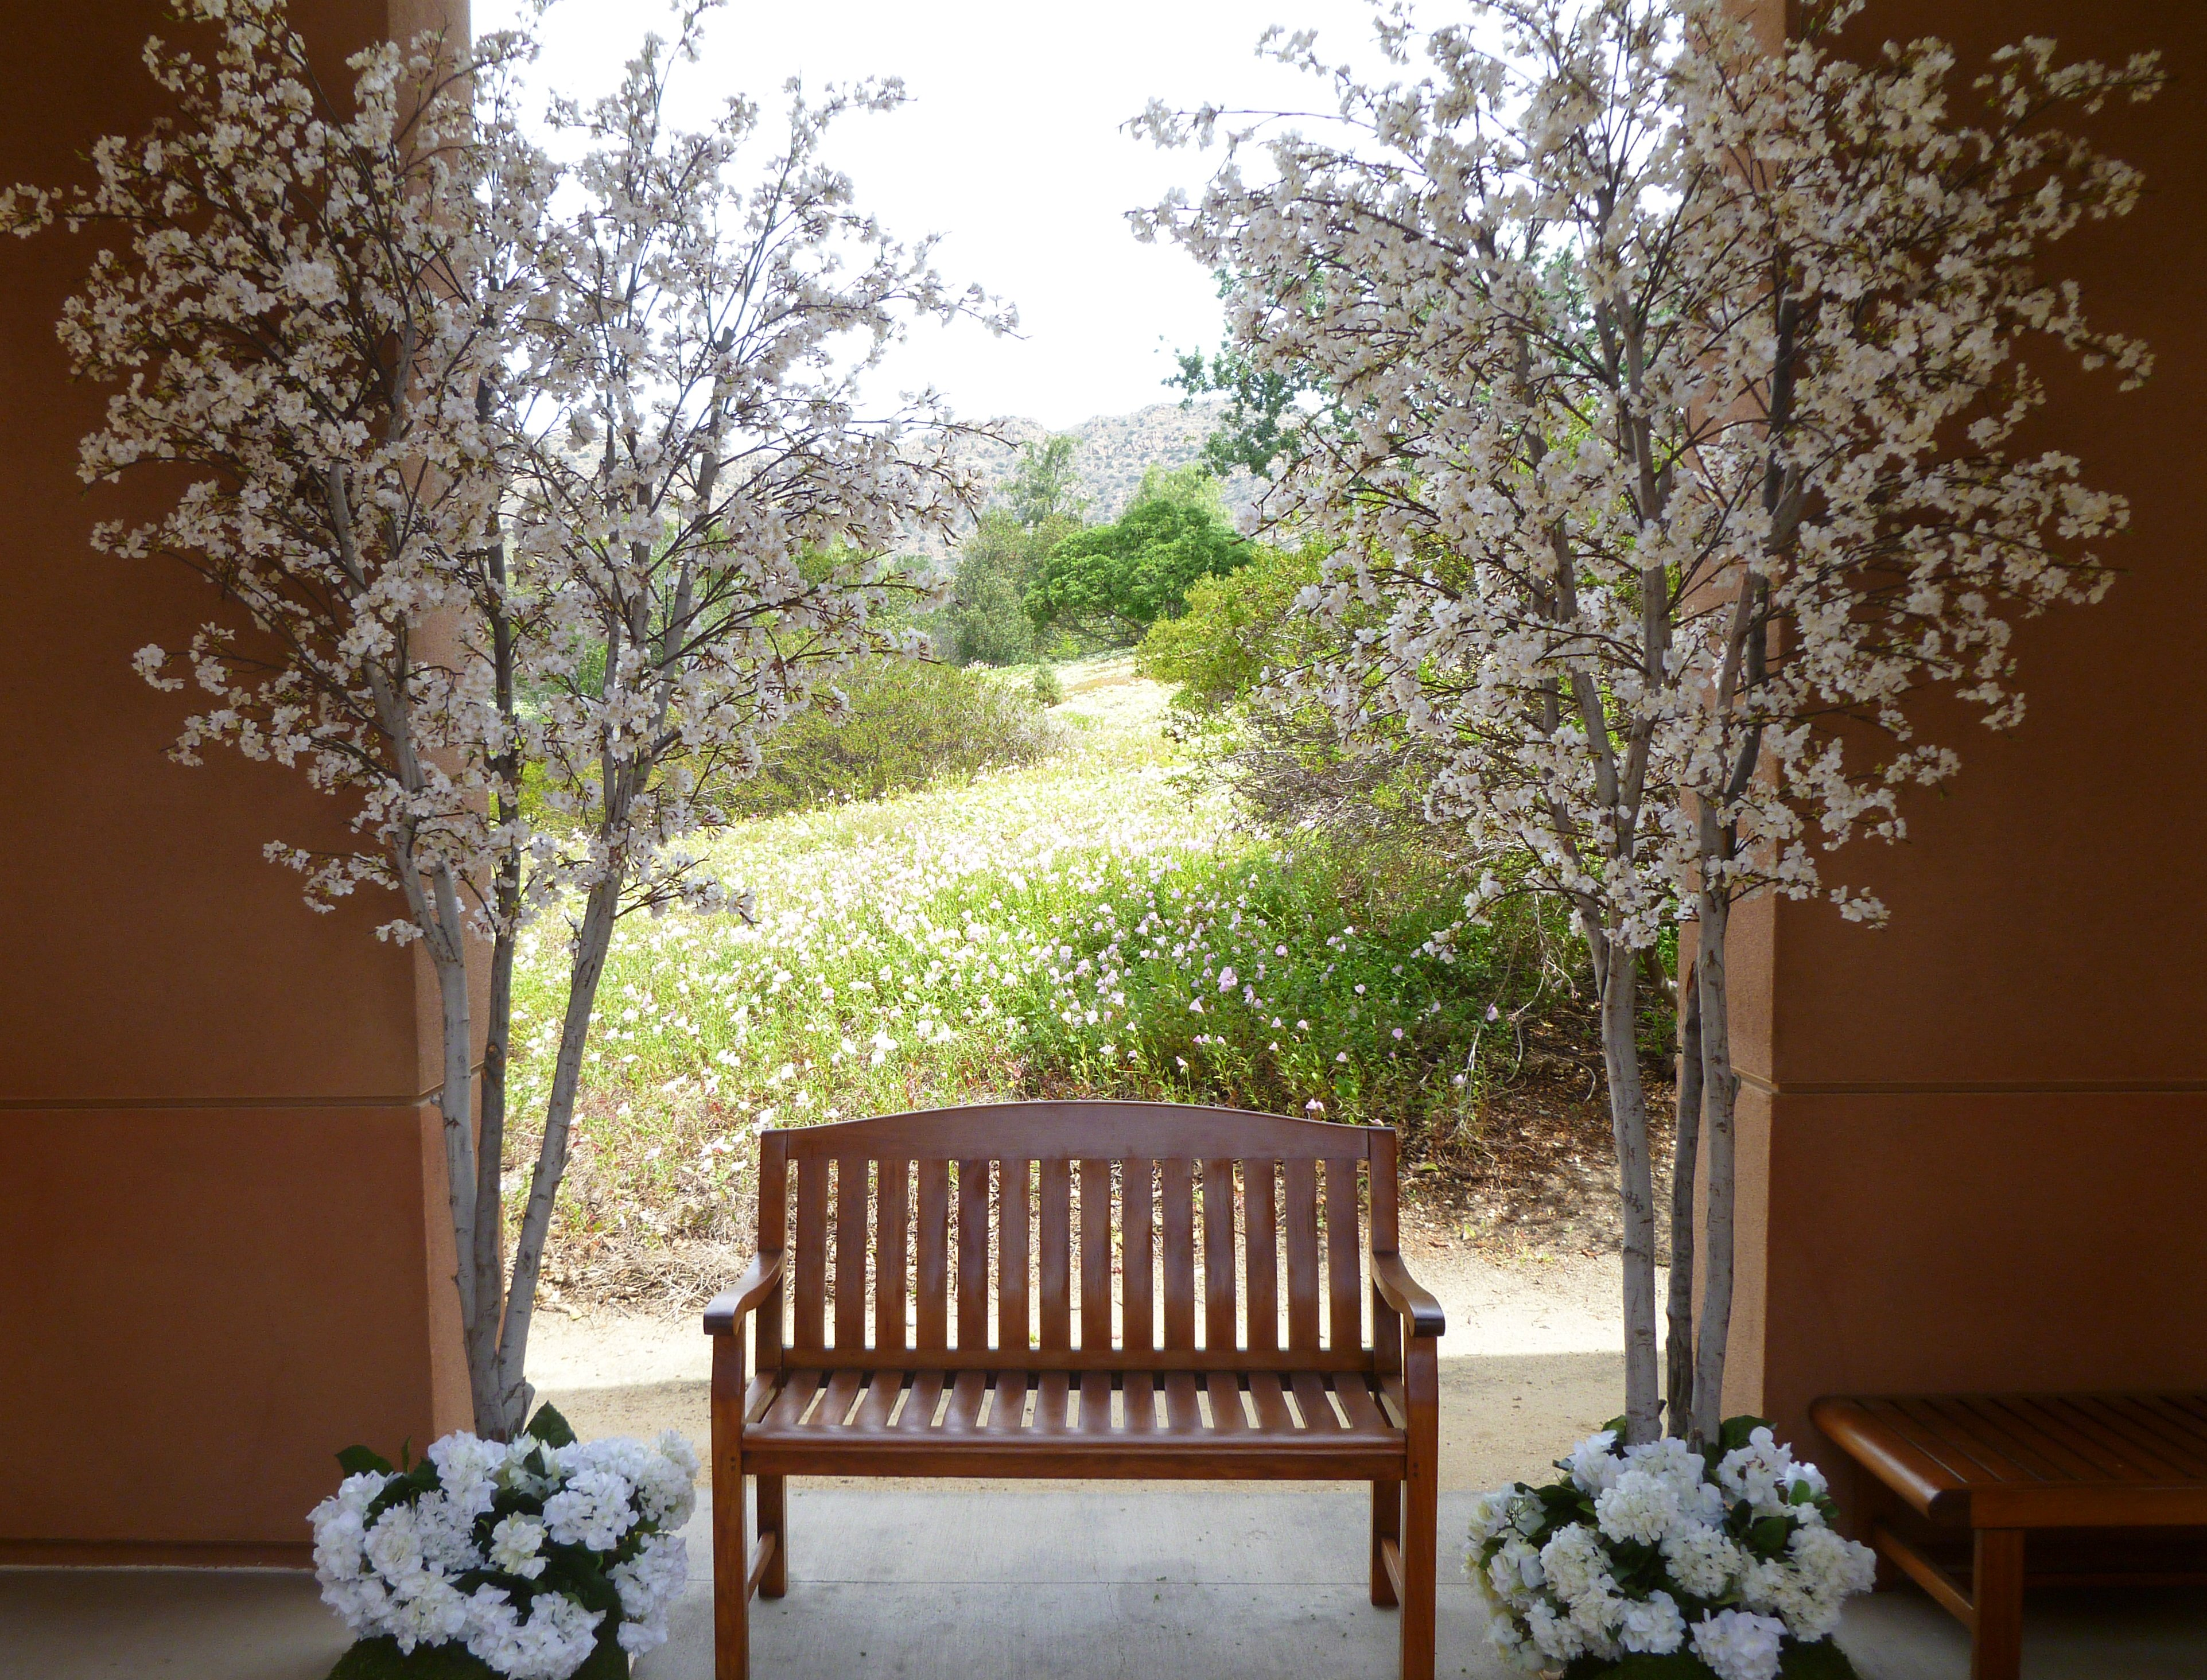 Tree rental for weddings events artificial plants faux trees event faux flower rental faux pink and white cherry blossom trees mightylinksfo